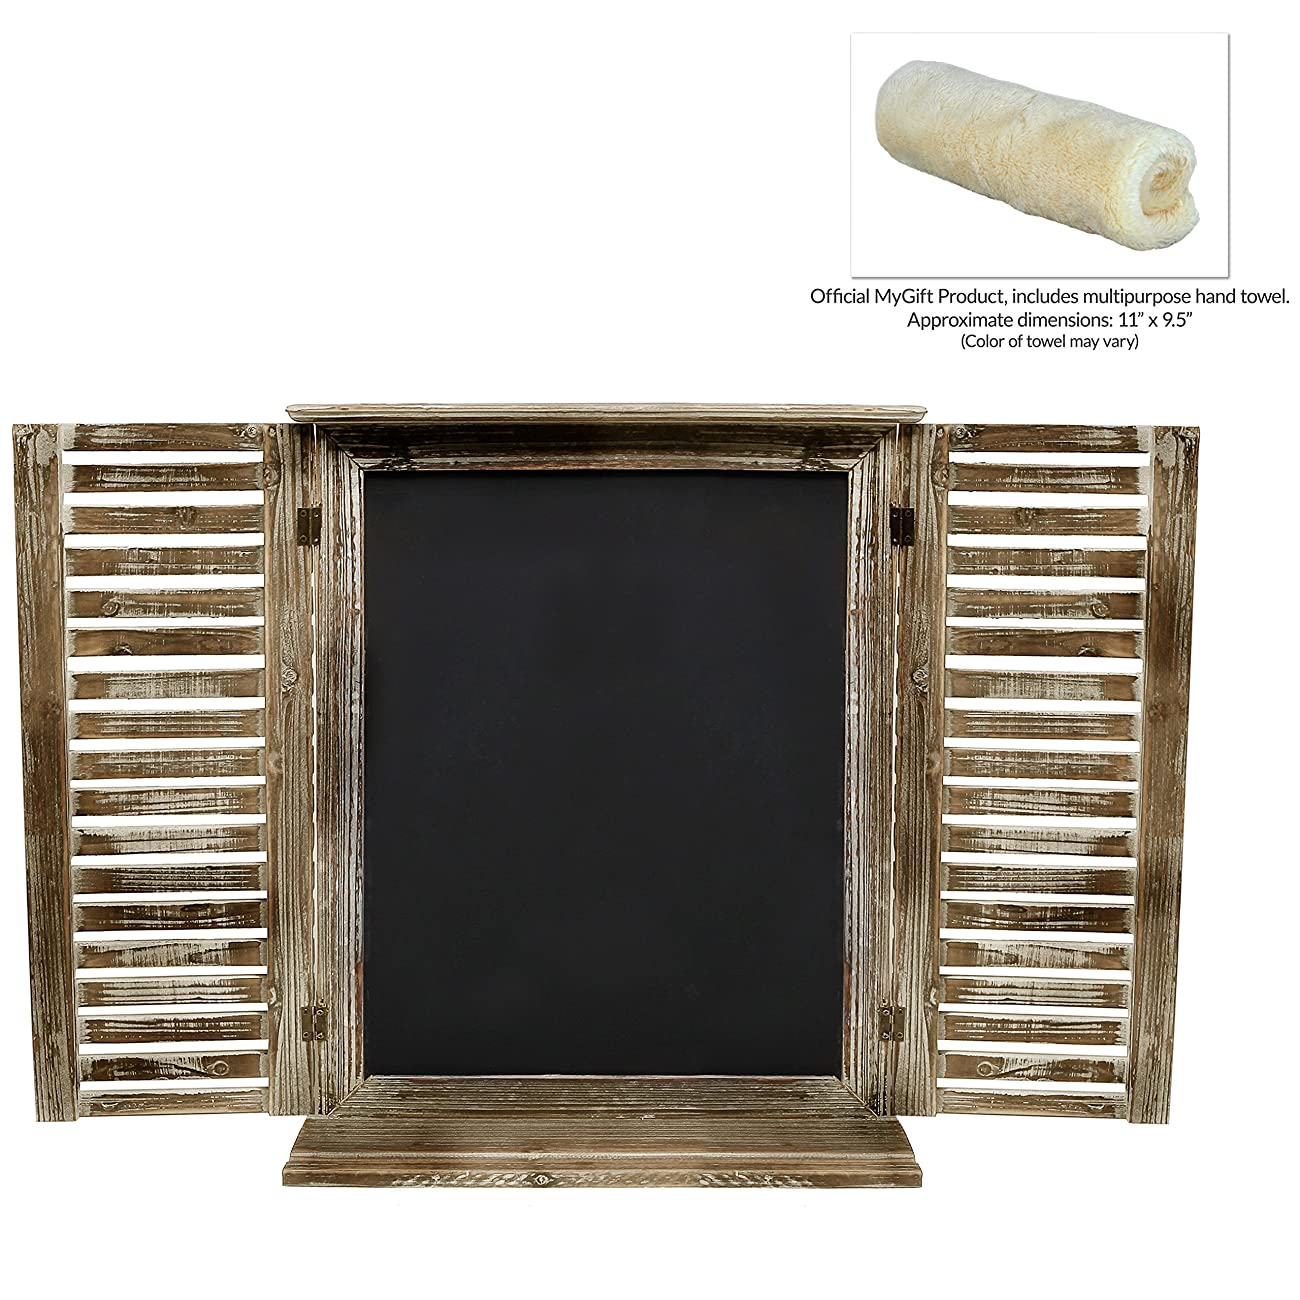 MyGift Rustic Standing Chalkboard with Folding Shutter Doors, Torched Wood Finish 5